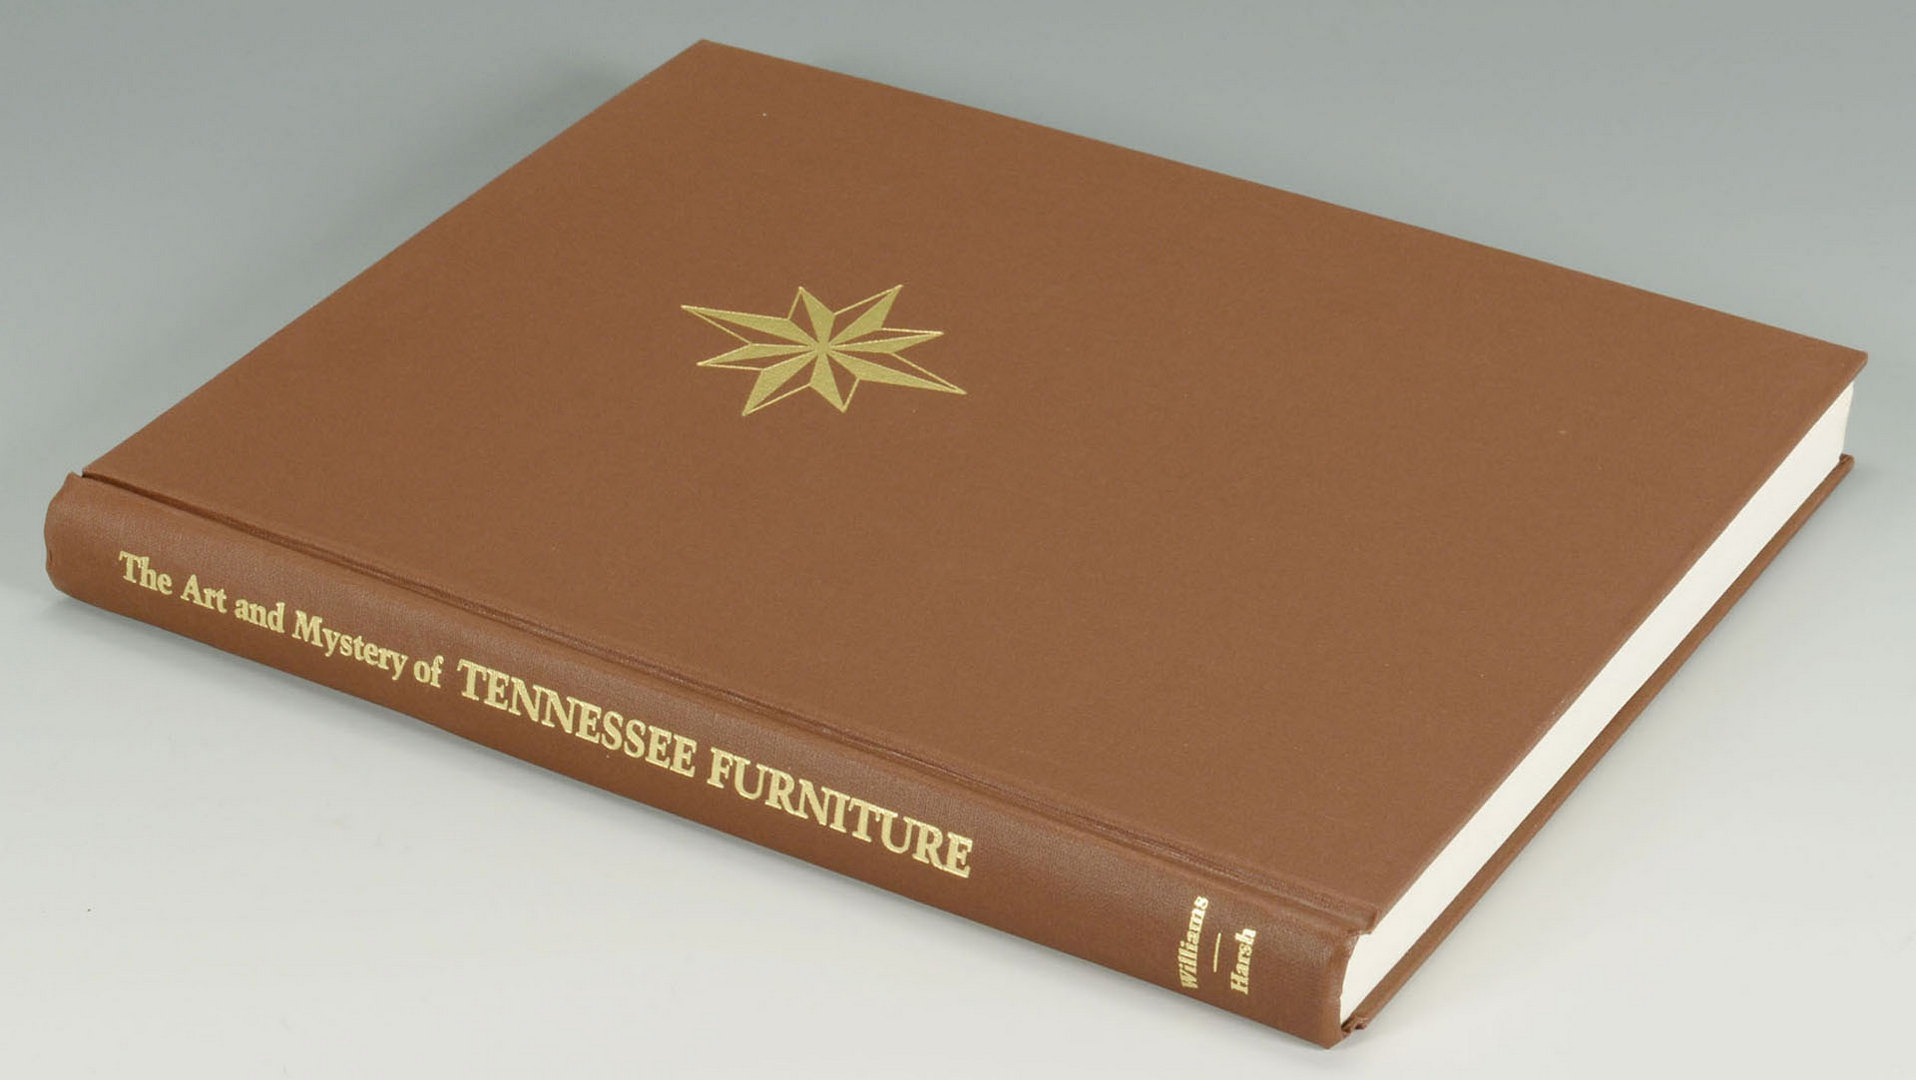 Lot 144: Art & Mystery of Tennessee Furniture Book